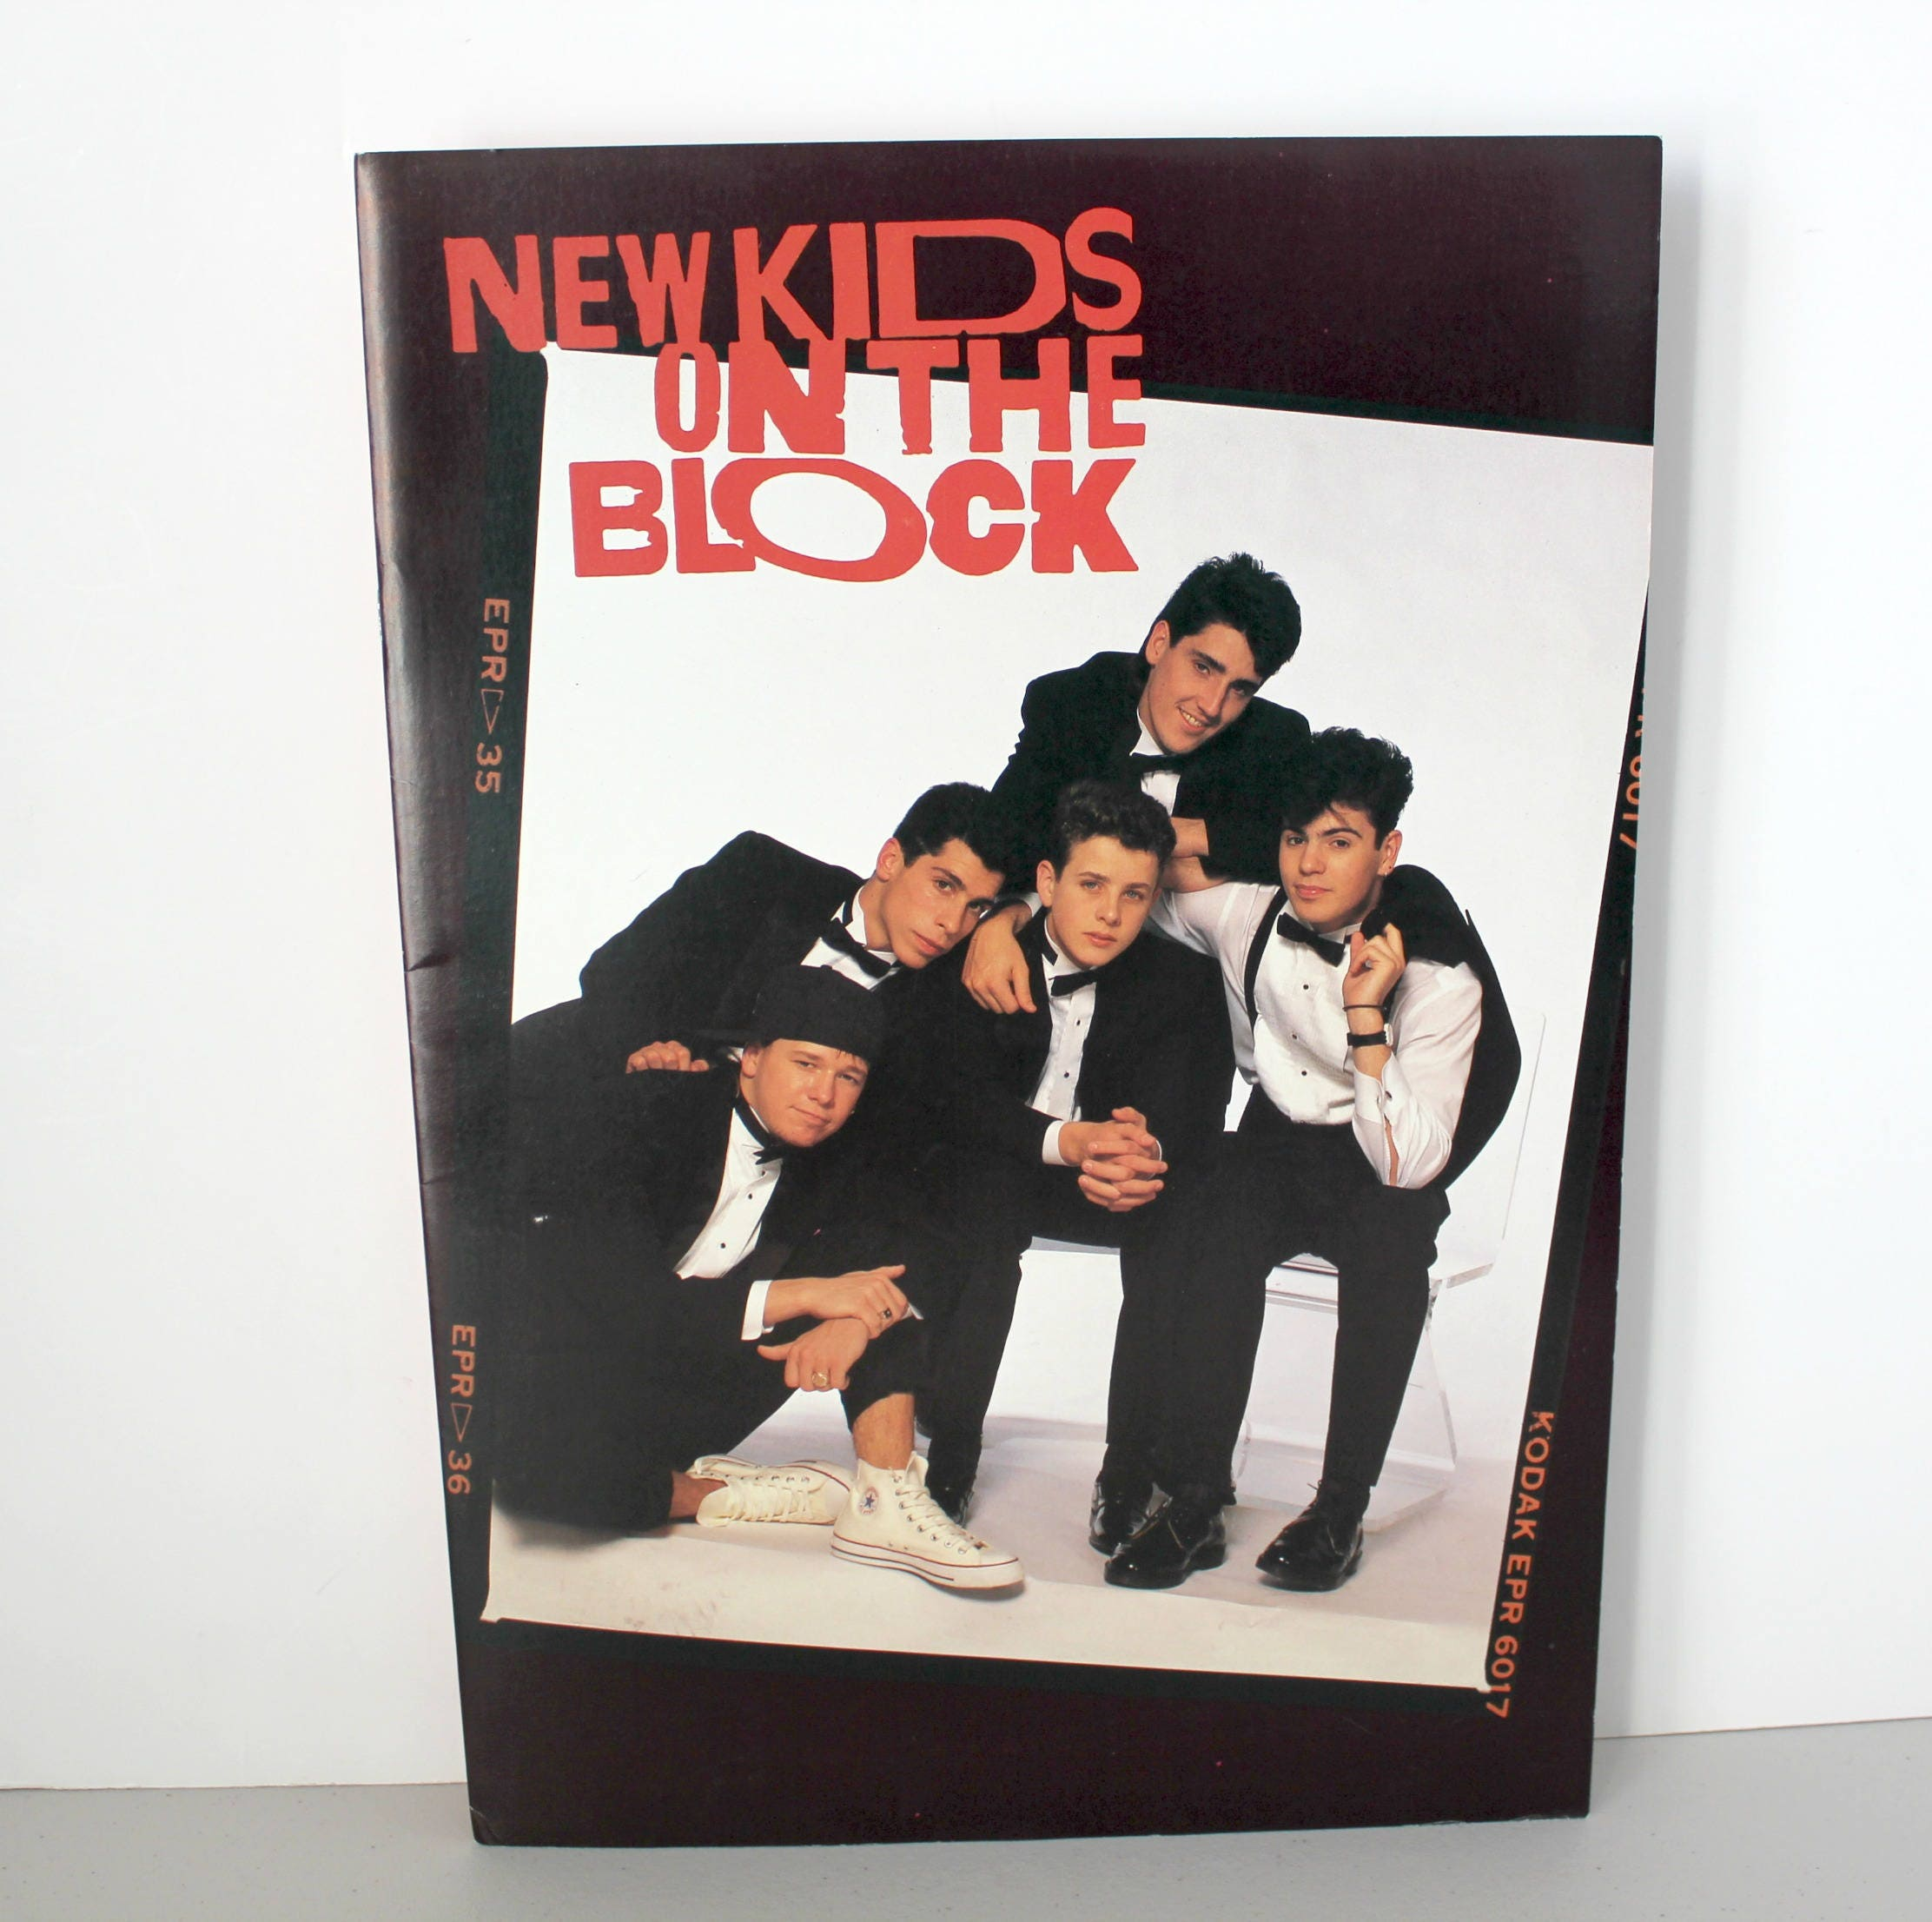 Vintage 1989 NKOTB Poster Book, New Kids On The Block Large Posters ...